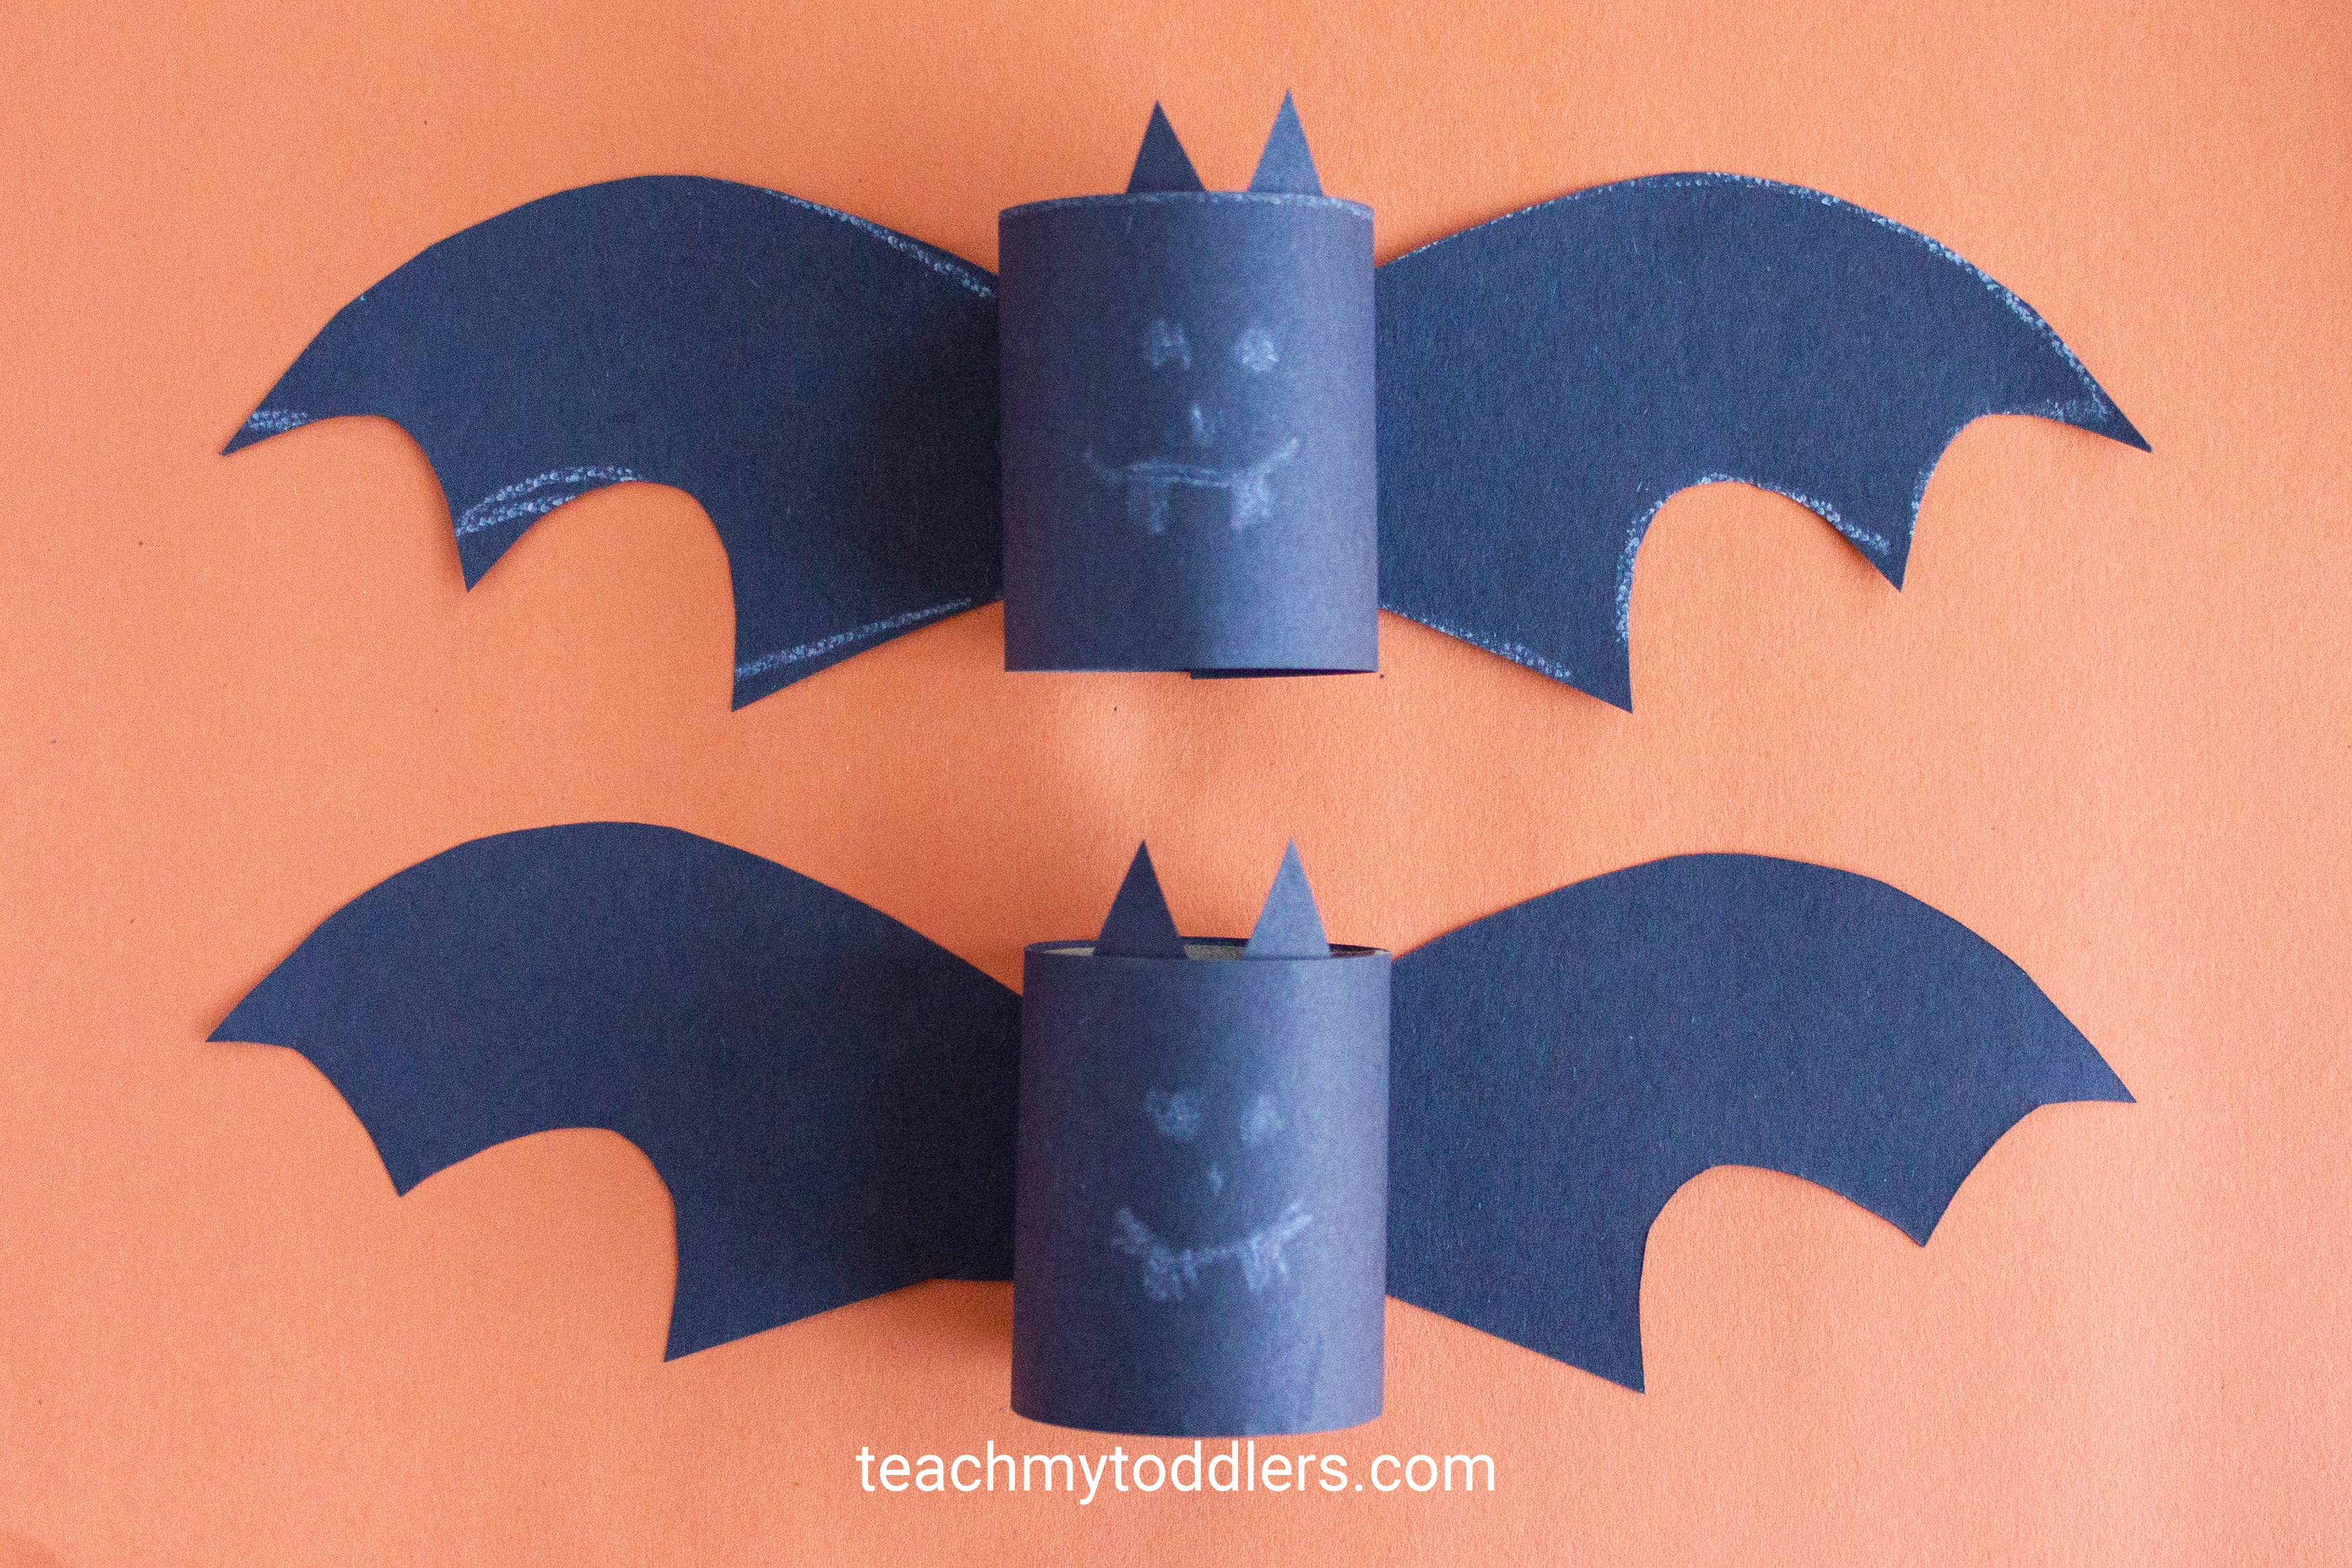 Learn how to make this paper bat craft for your toddler's halloween activity